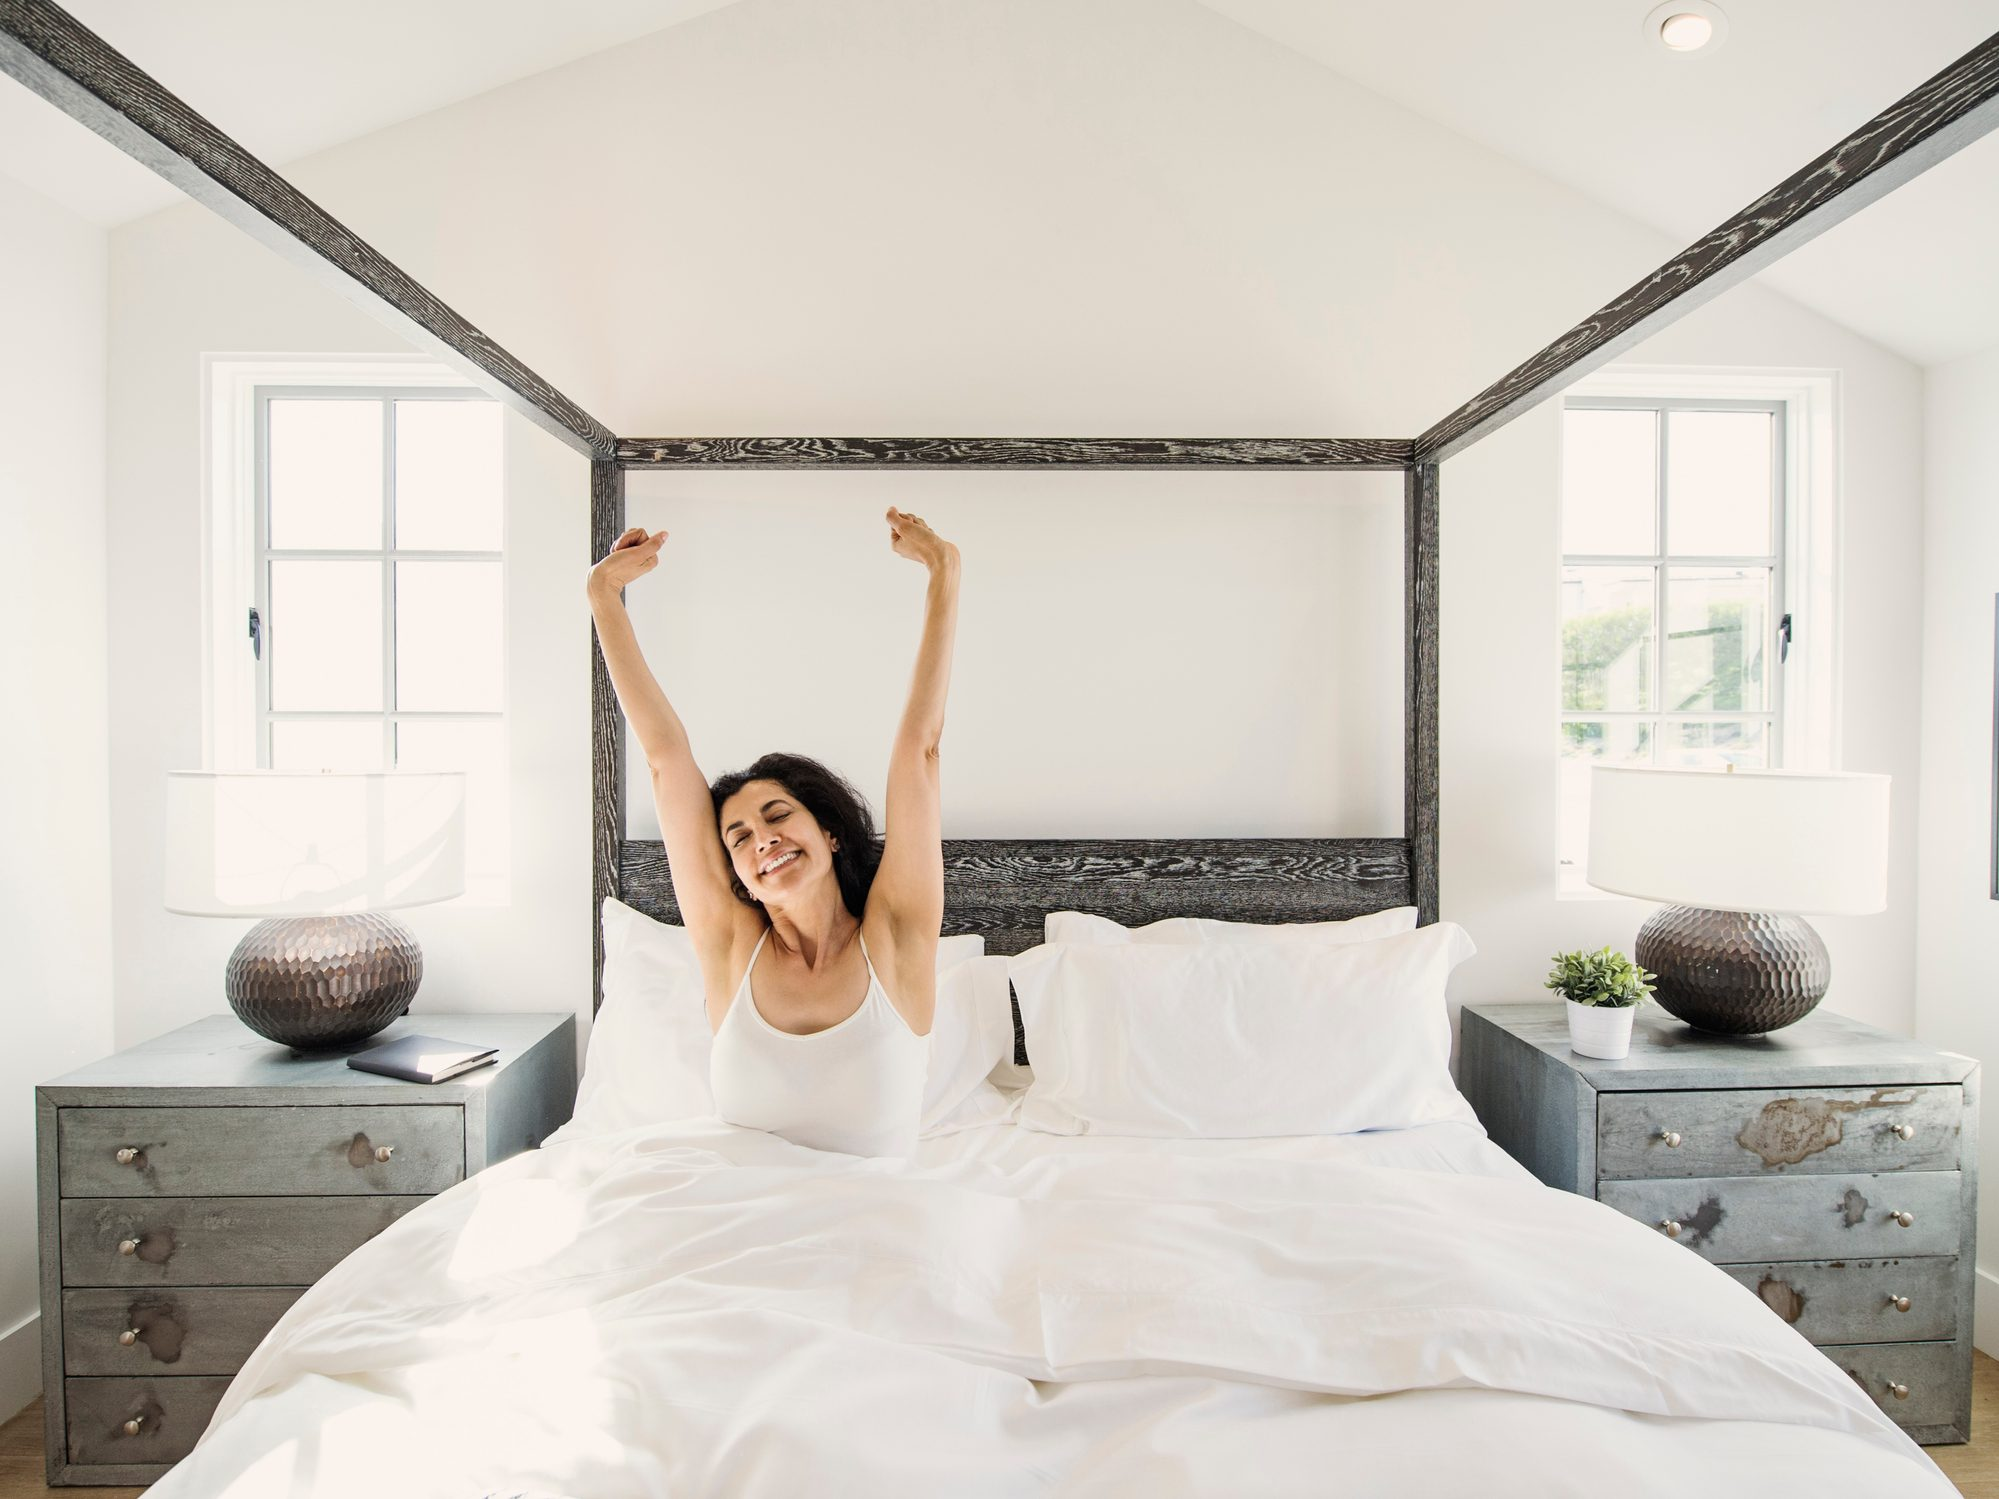 woman waking up happy in bed in the morning